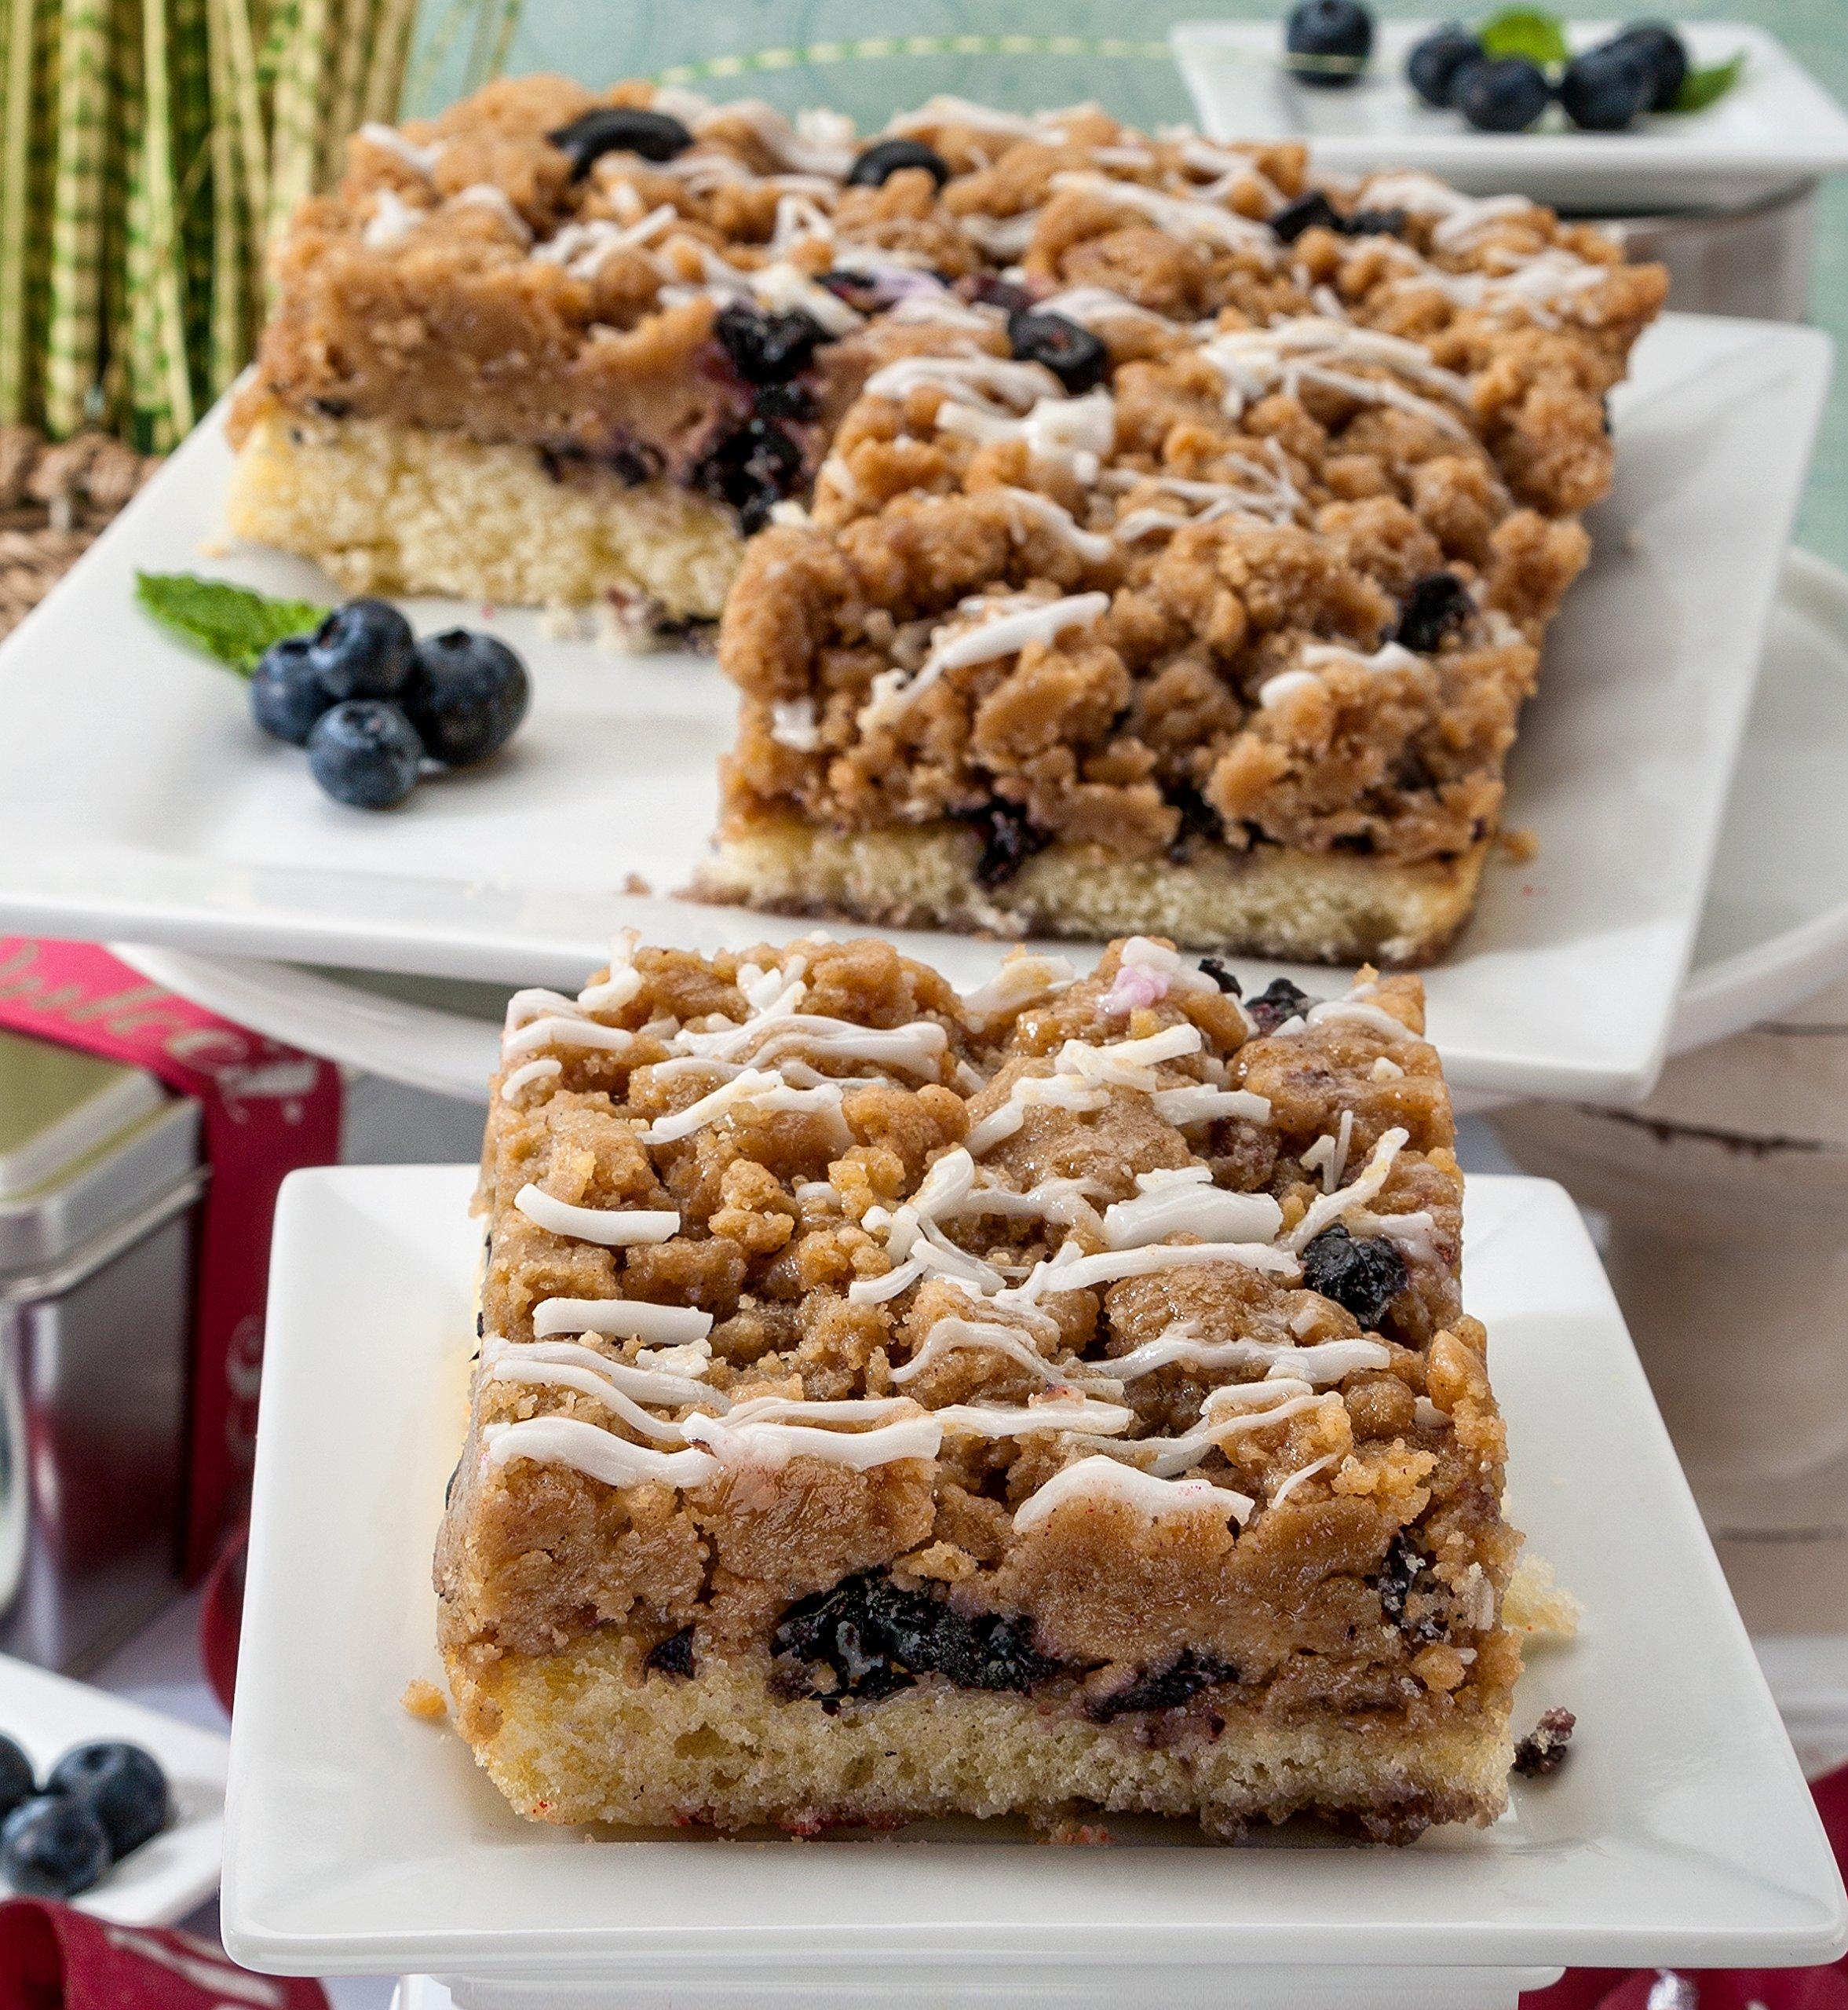 Dulcet Blueberry Crumb Cake Gourmet Gift Basket, Incudes 2 Trays 8 X 8 Crumb Cakes, Ideal for Birthday, Get Well, Sympathy, Thank You, Top Gift!